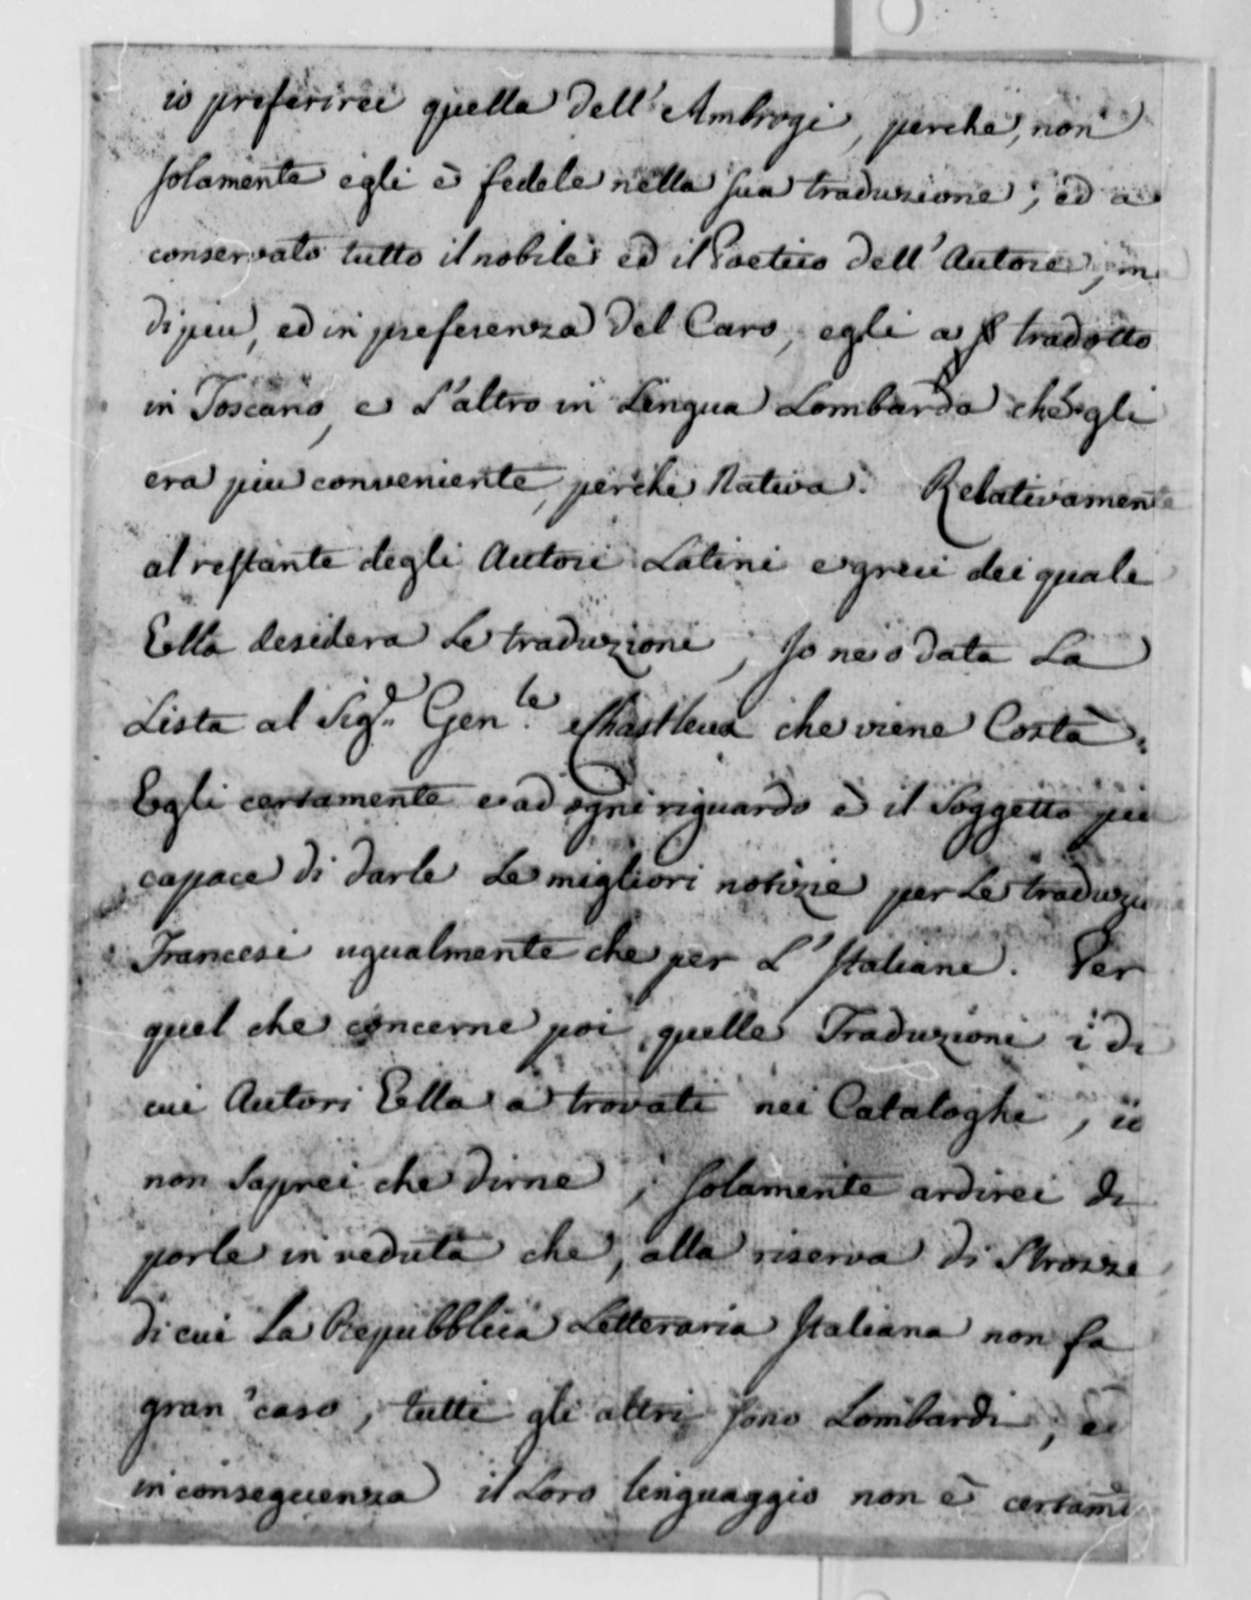 Charles Bellini to Thomas Jefferson, April 8, 1782, in Italian